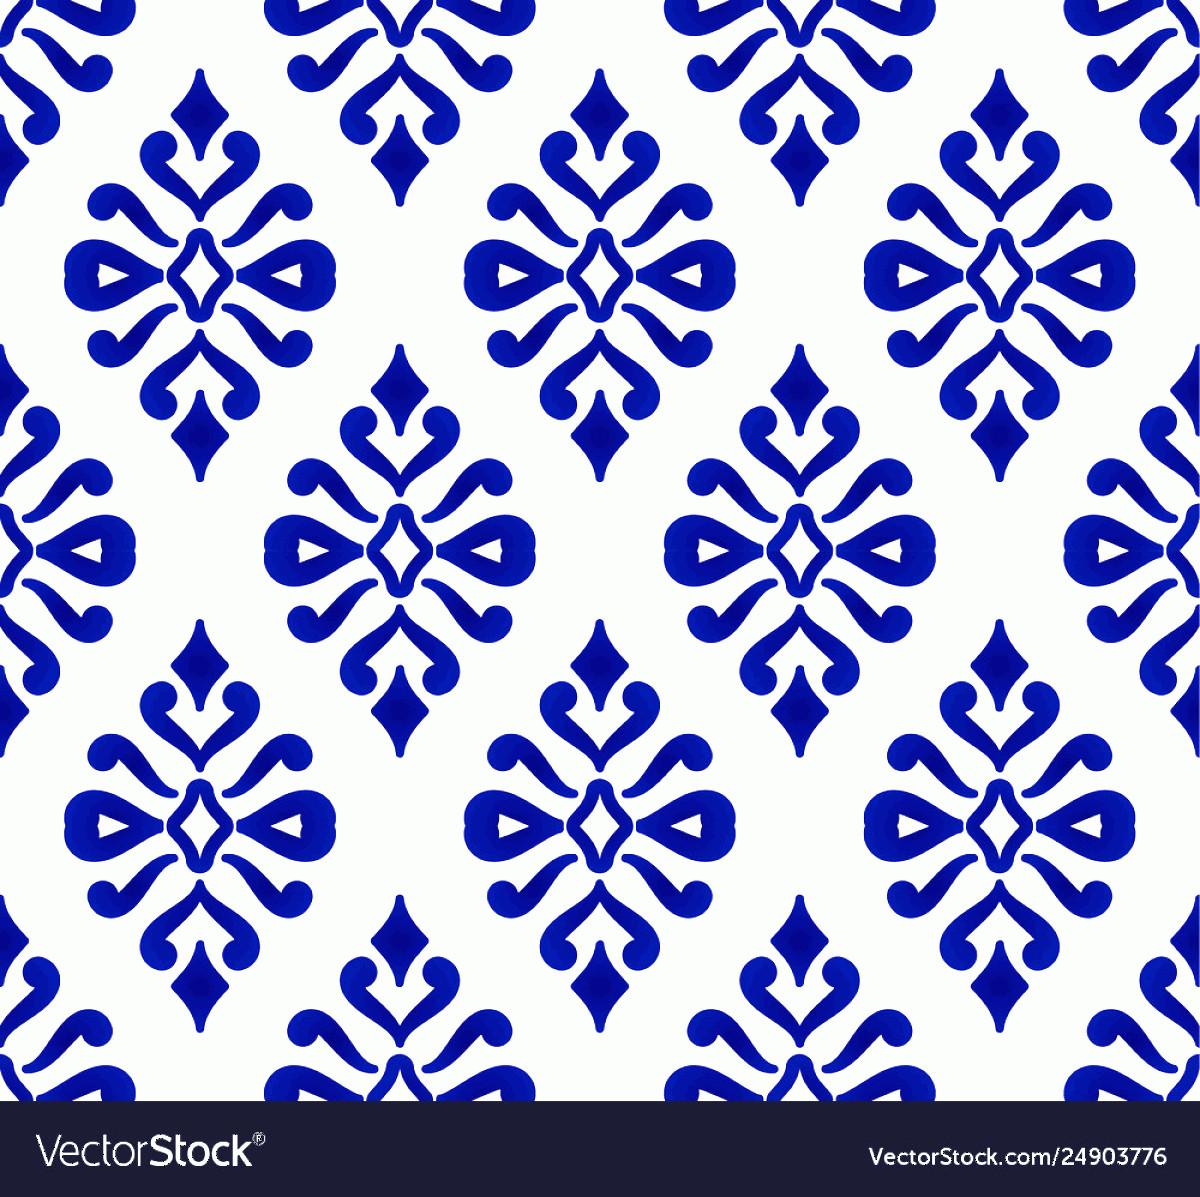 Blue And White Damask Vectors: Blue And White Damask Seamless Pattern Vector